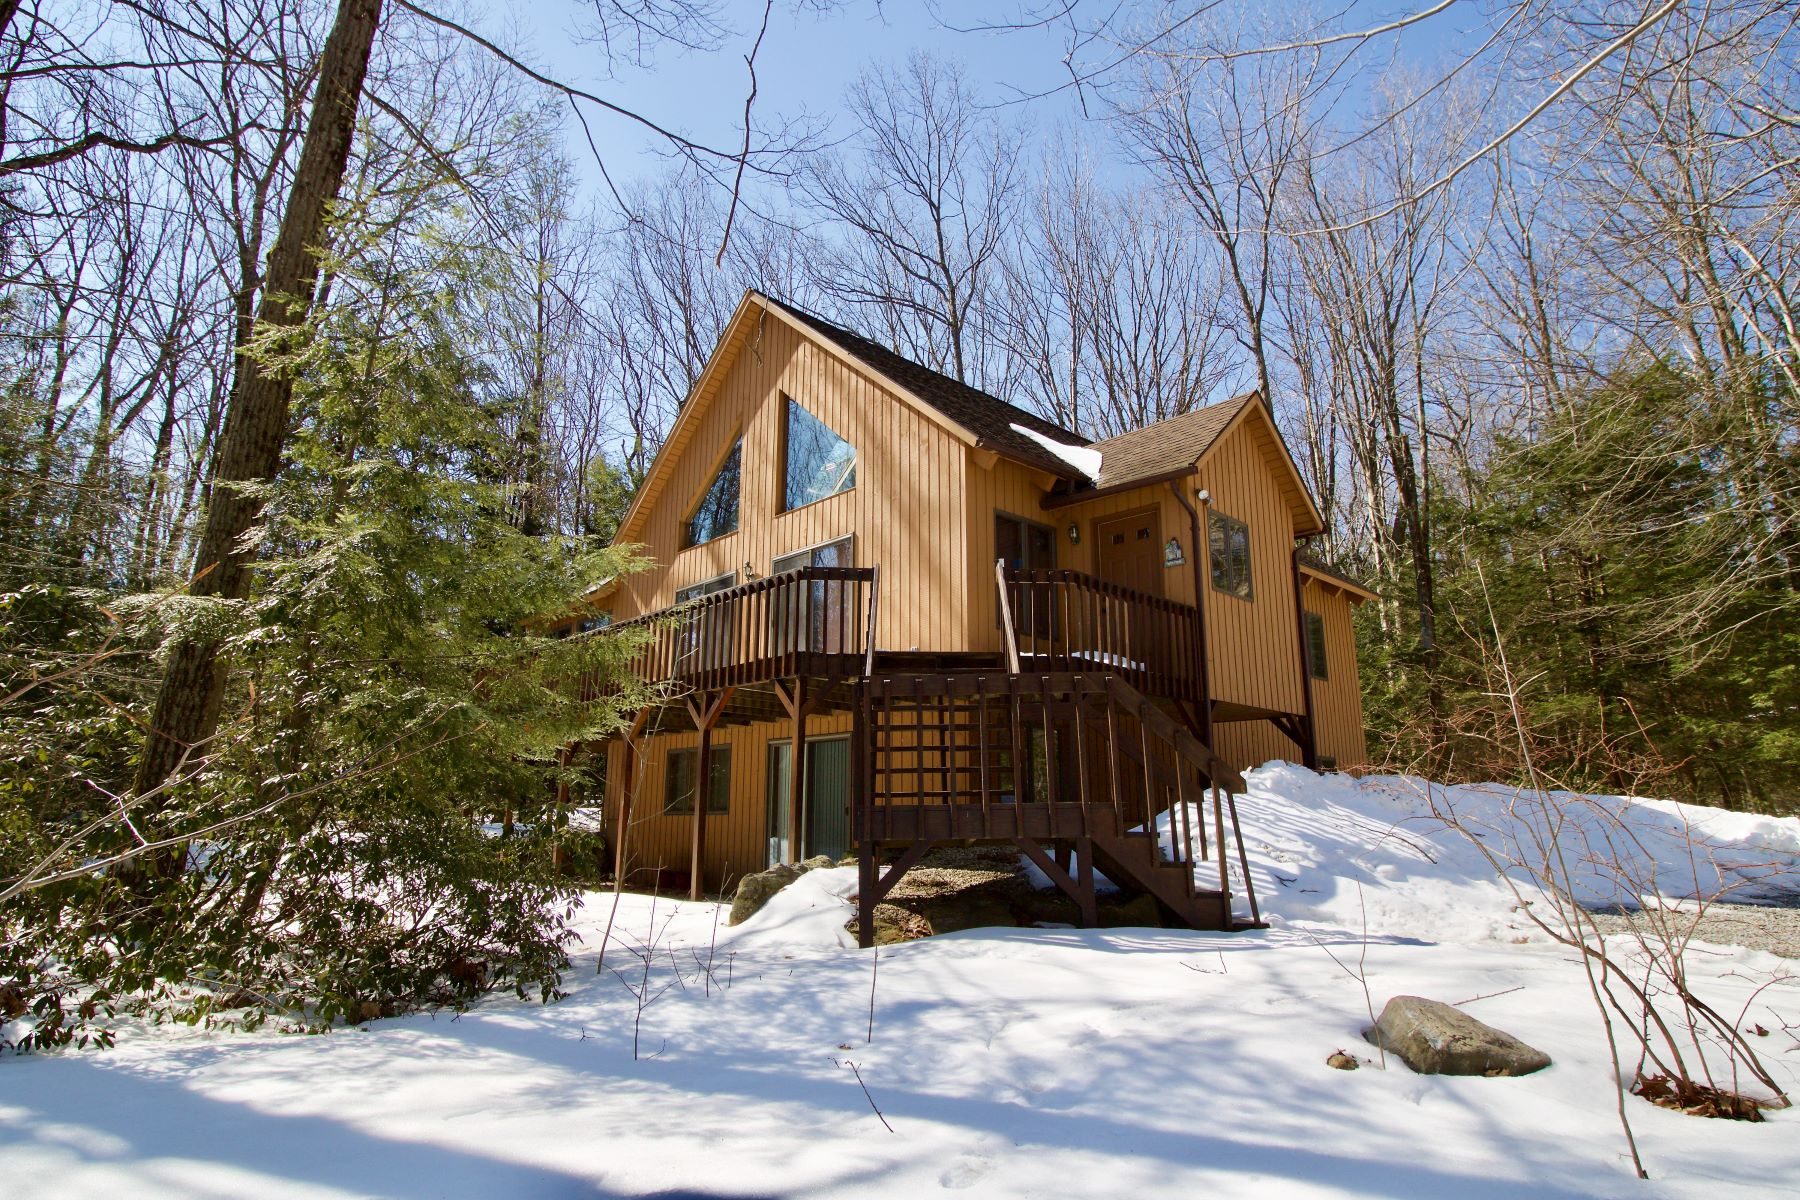 Single Family Home for Active at Your Perfect Family Getaway is Here! Beautifully Maintained Owl Country Home in 308 Shadow Ln Sandisfield, Massachusetts 01255 United States